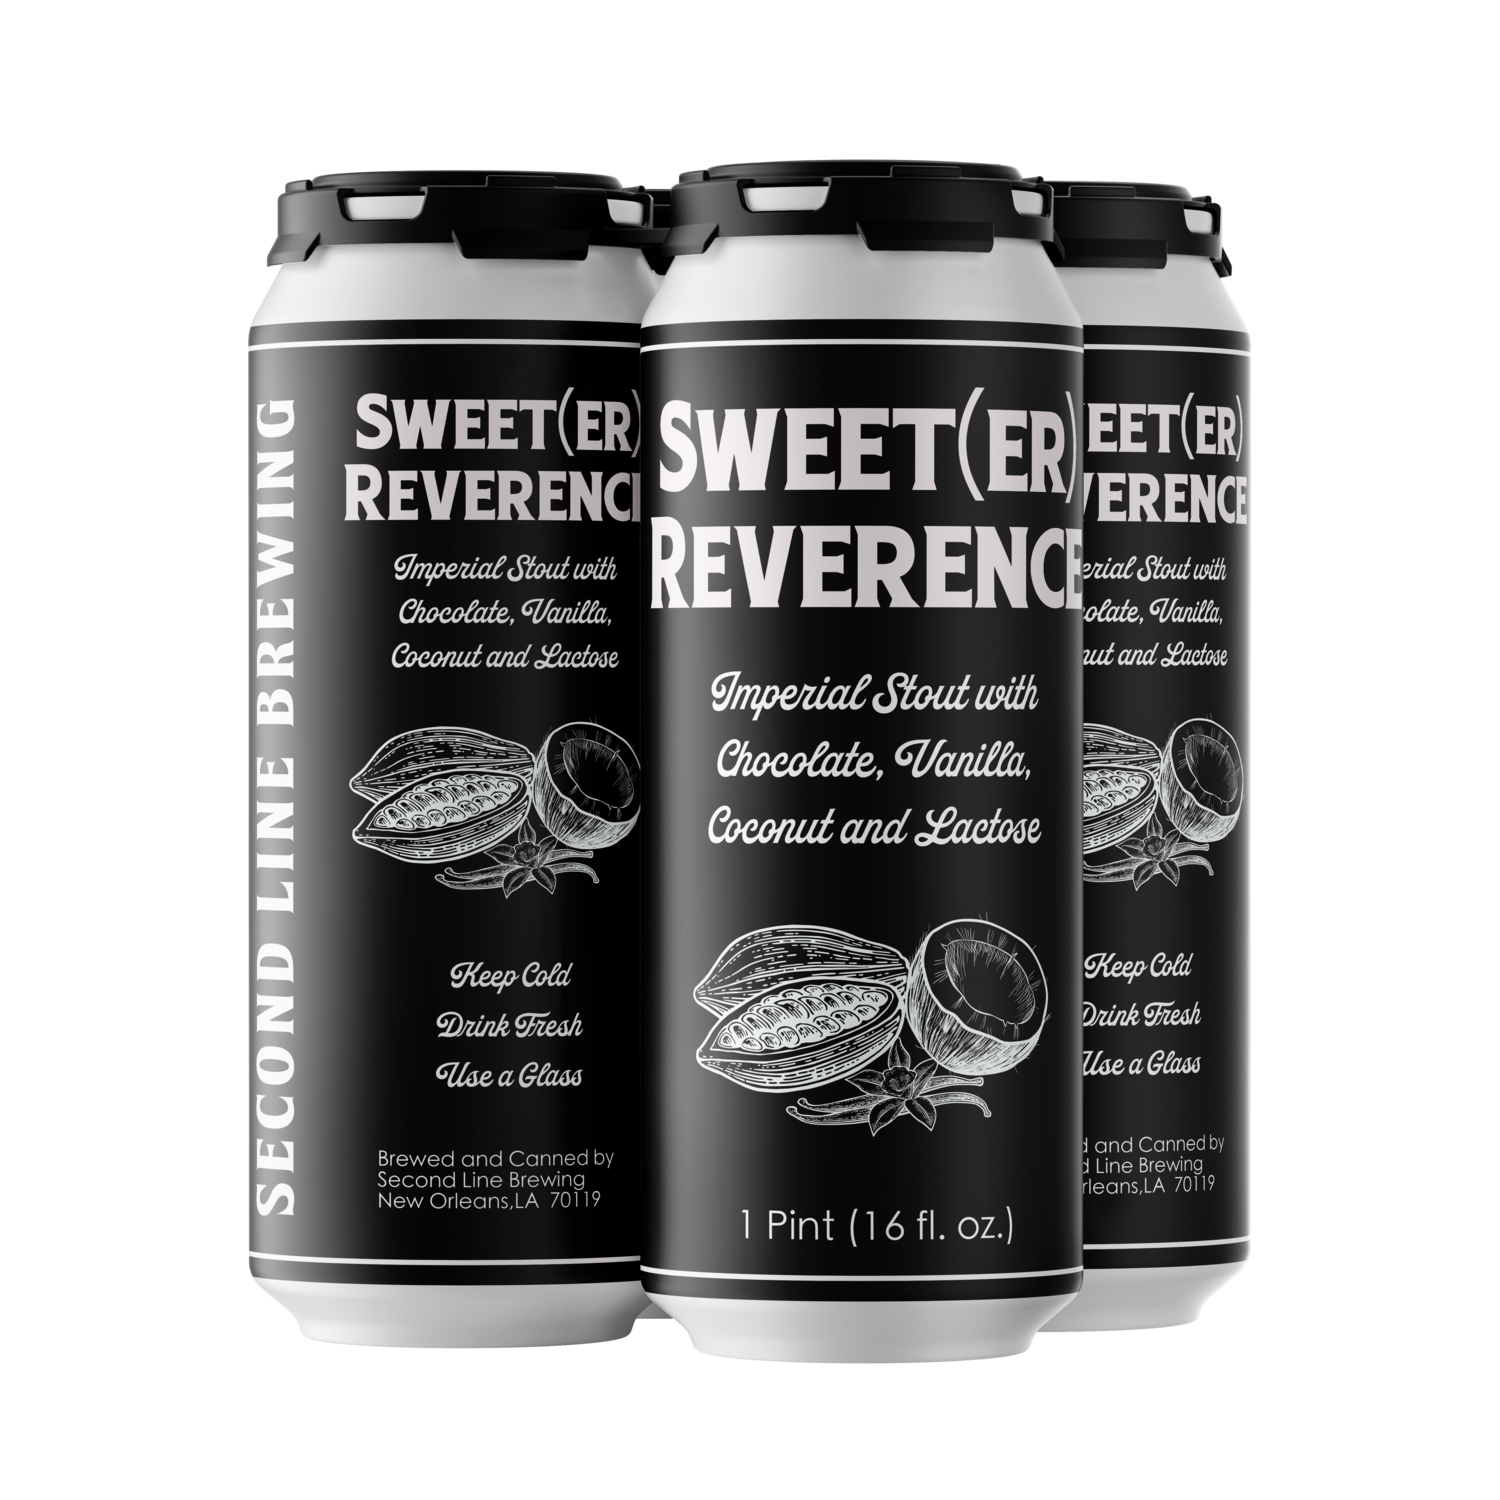 Sweet(er) Reverence - 4pk of 16oz Cans